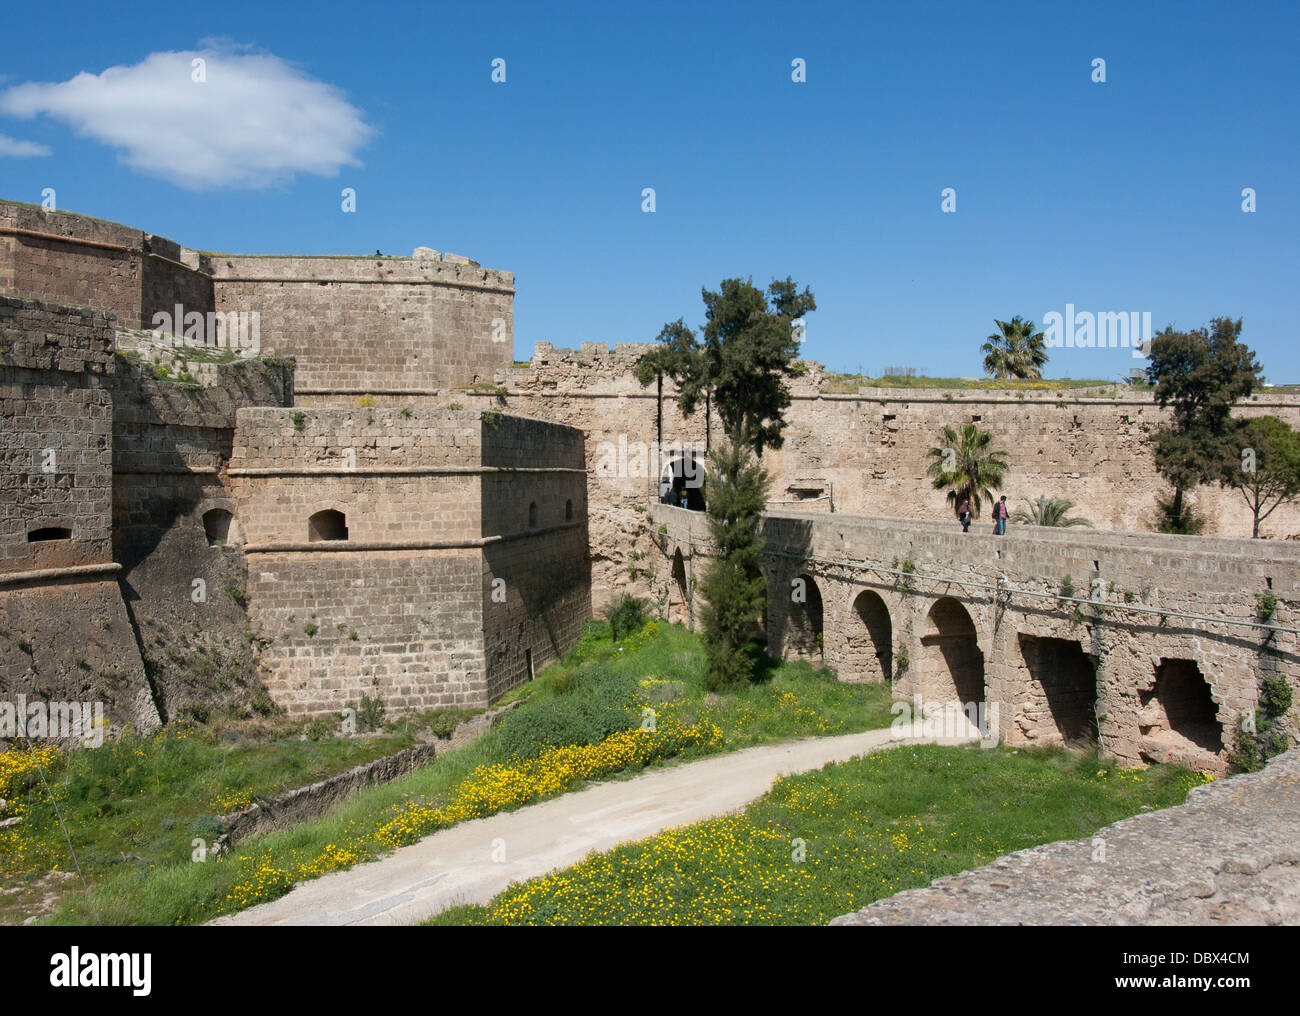 Old fortifications and bridge leading to the Land Gate (also known as the Limassol Gate) into Famagusta, North Cyprus - Stock Image